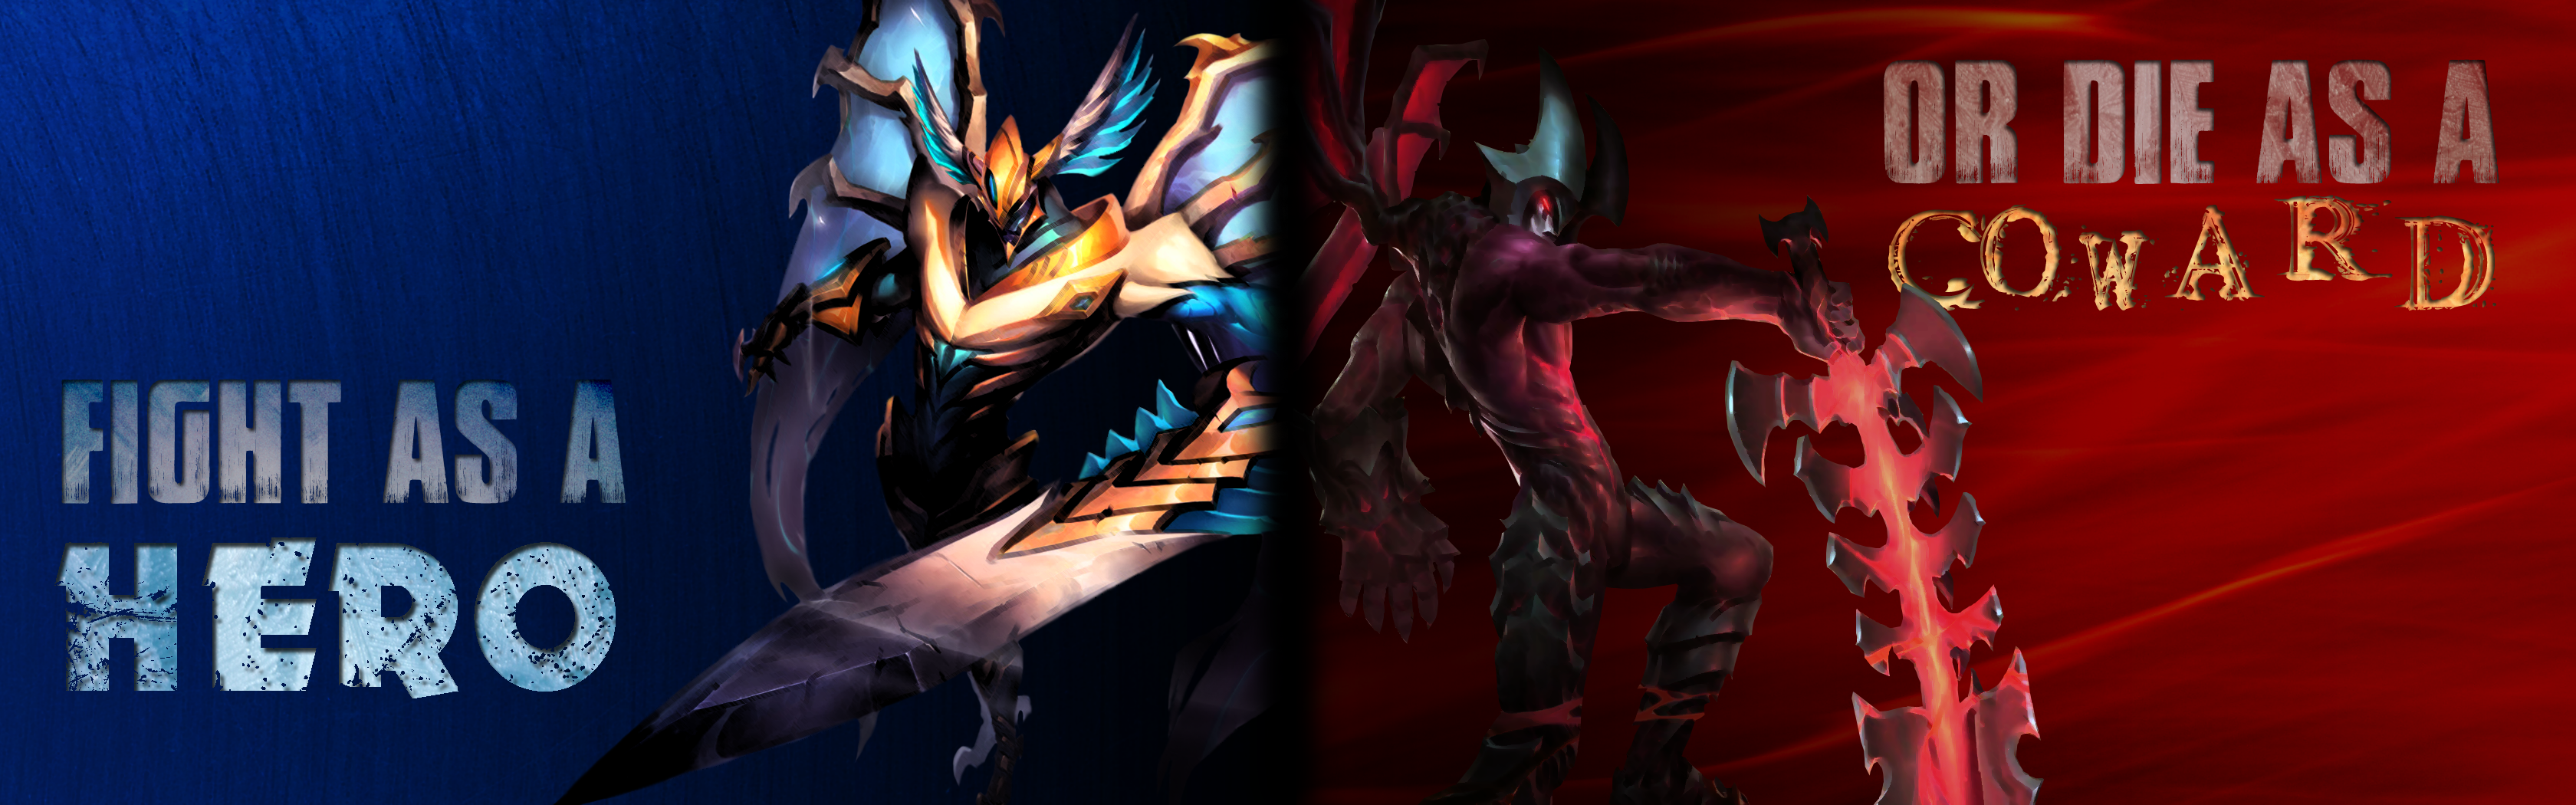 Aatrox Dual Screen Wallpaper By Doidero On Deviantart